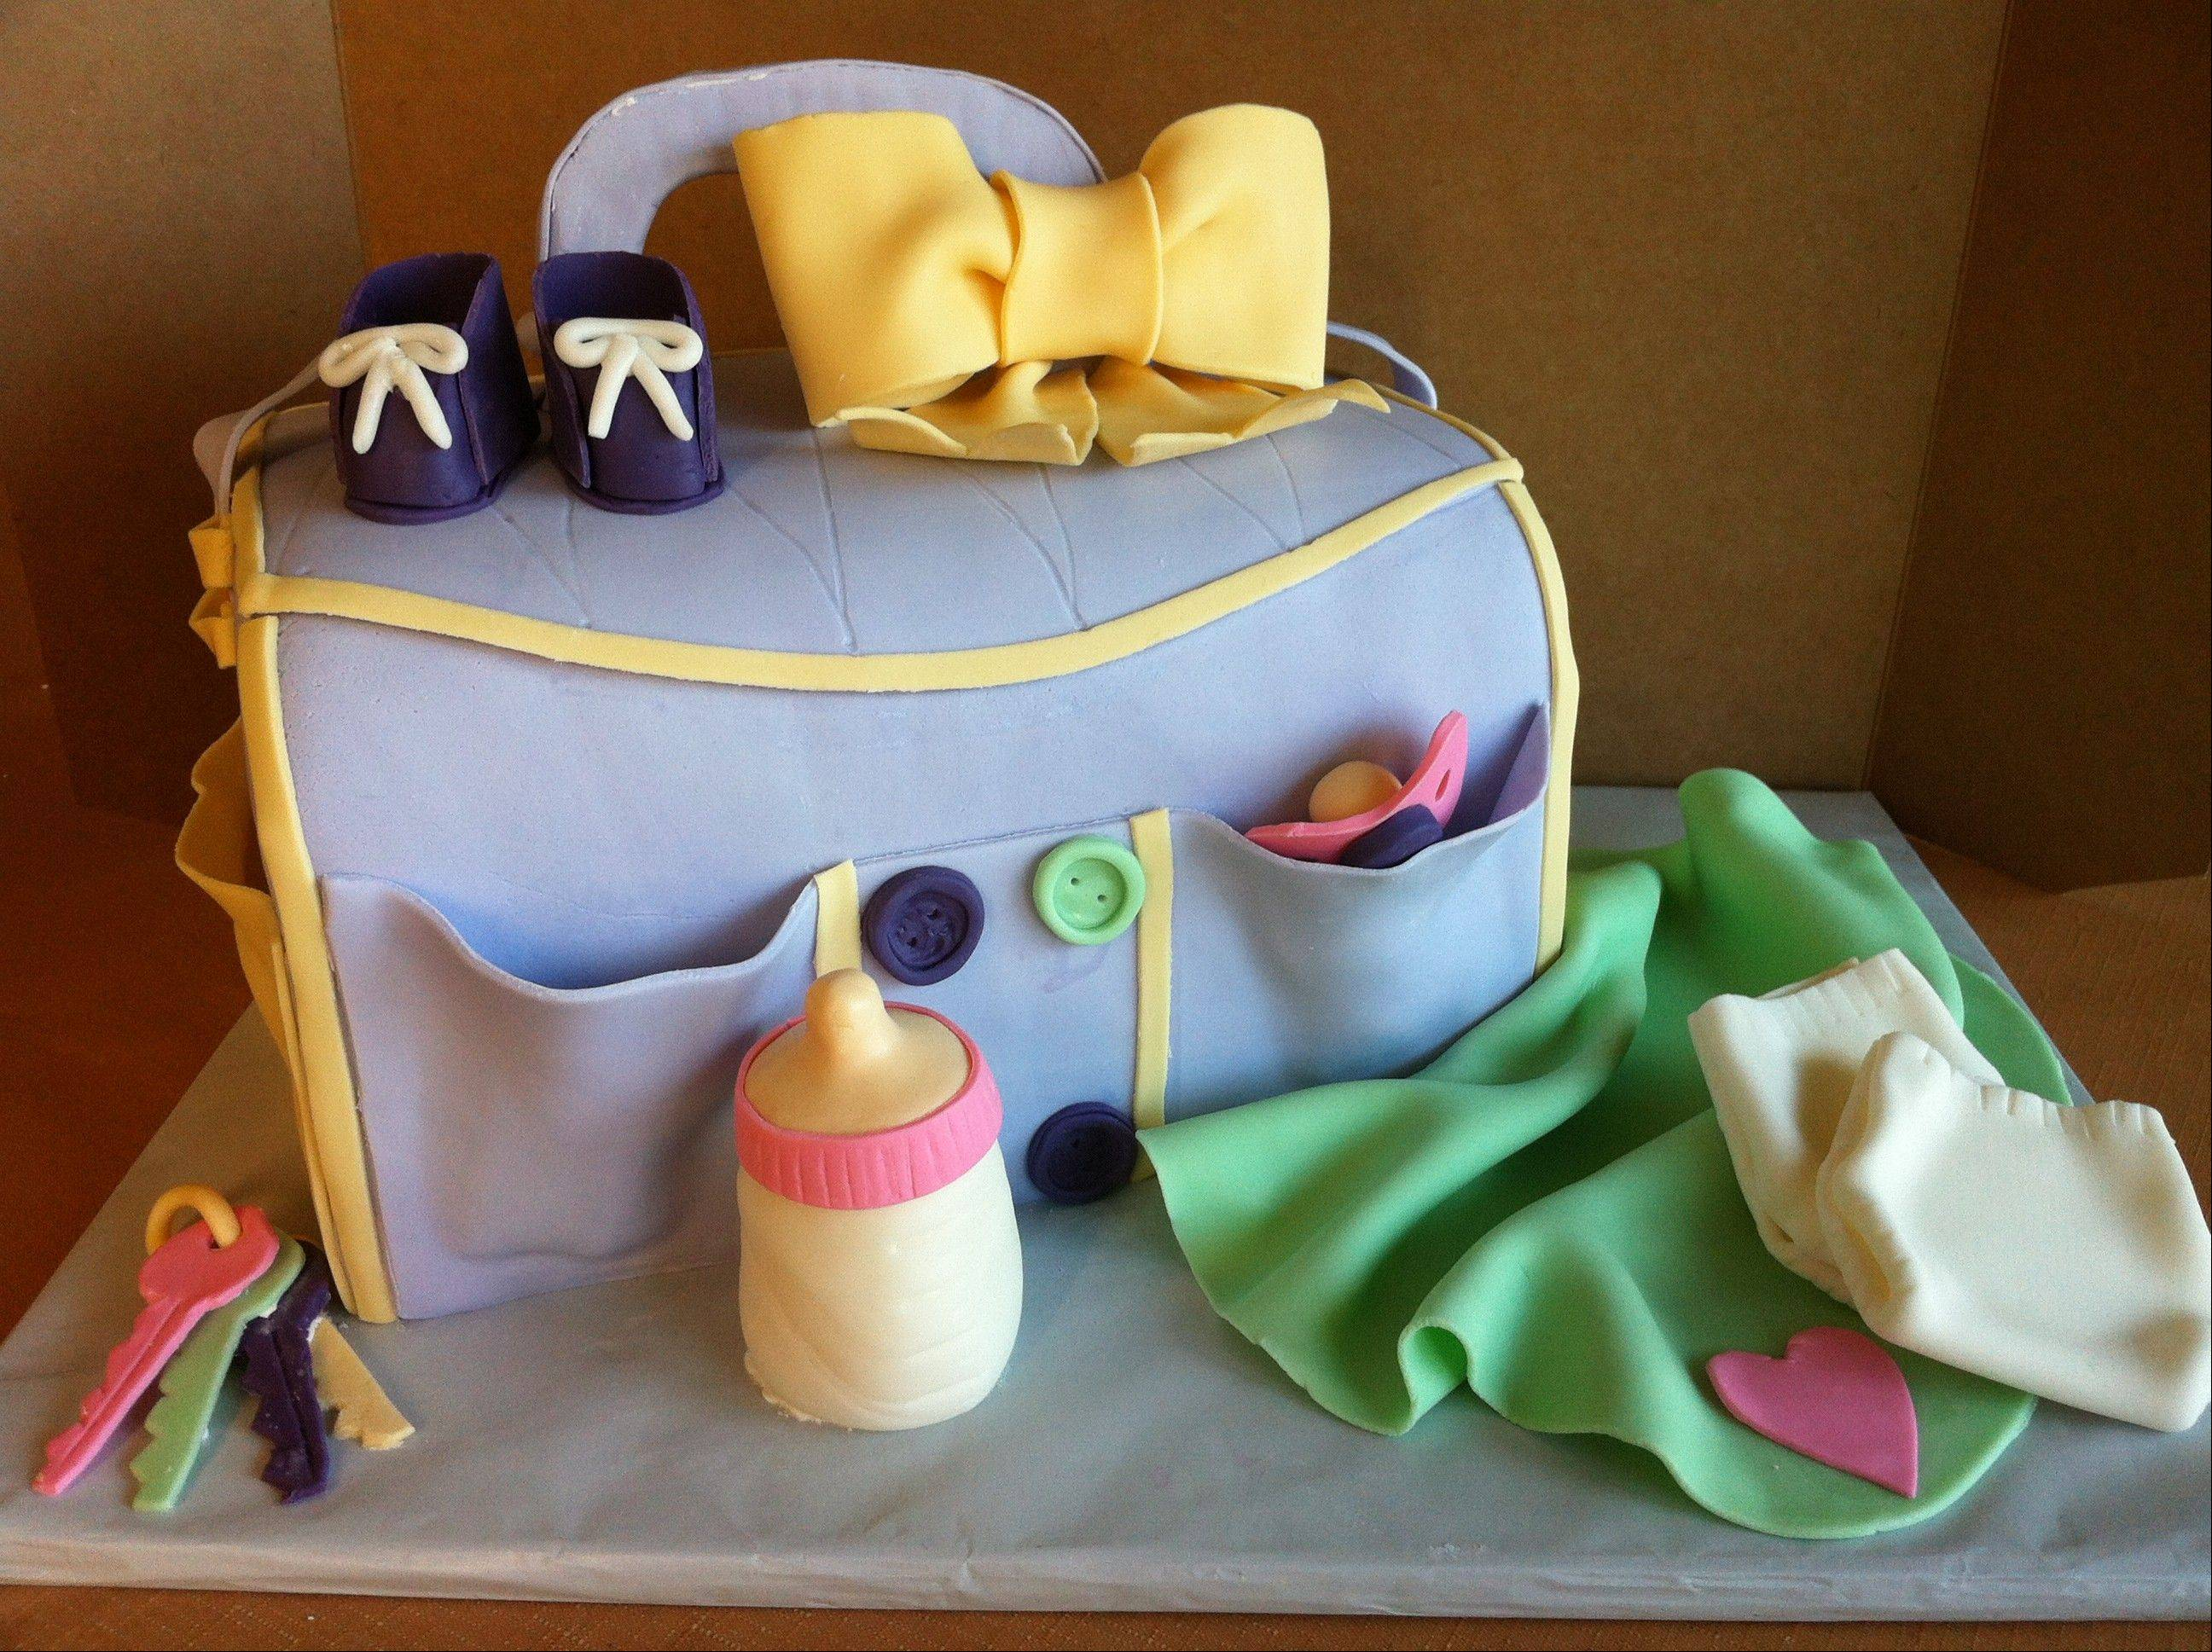 Sweet Occasions Cake Studio specializes in an array of cakes. This diaper bag is all edible.